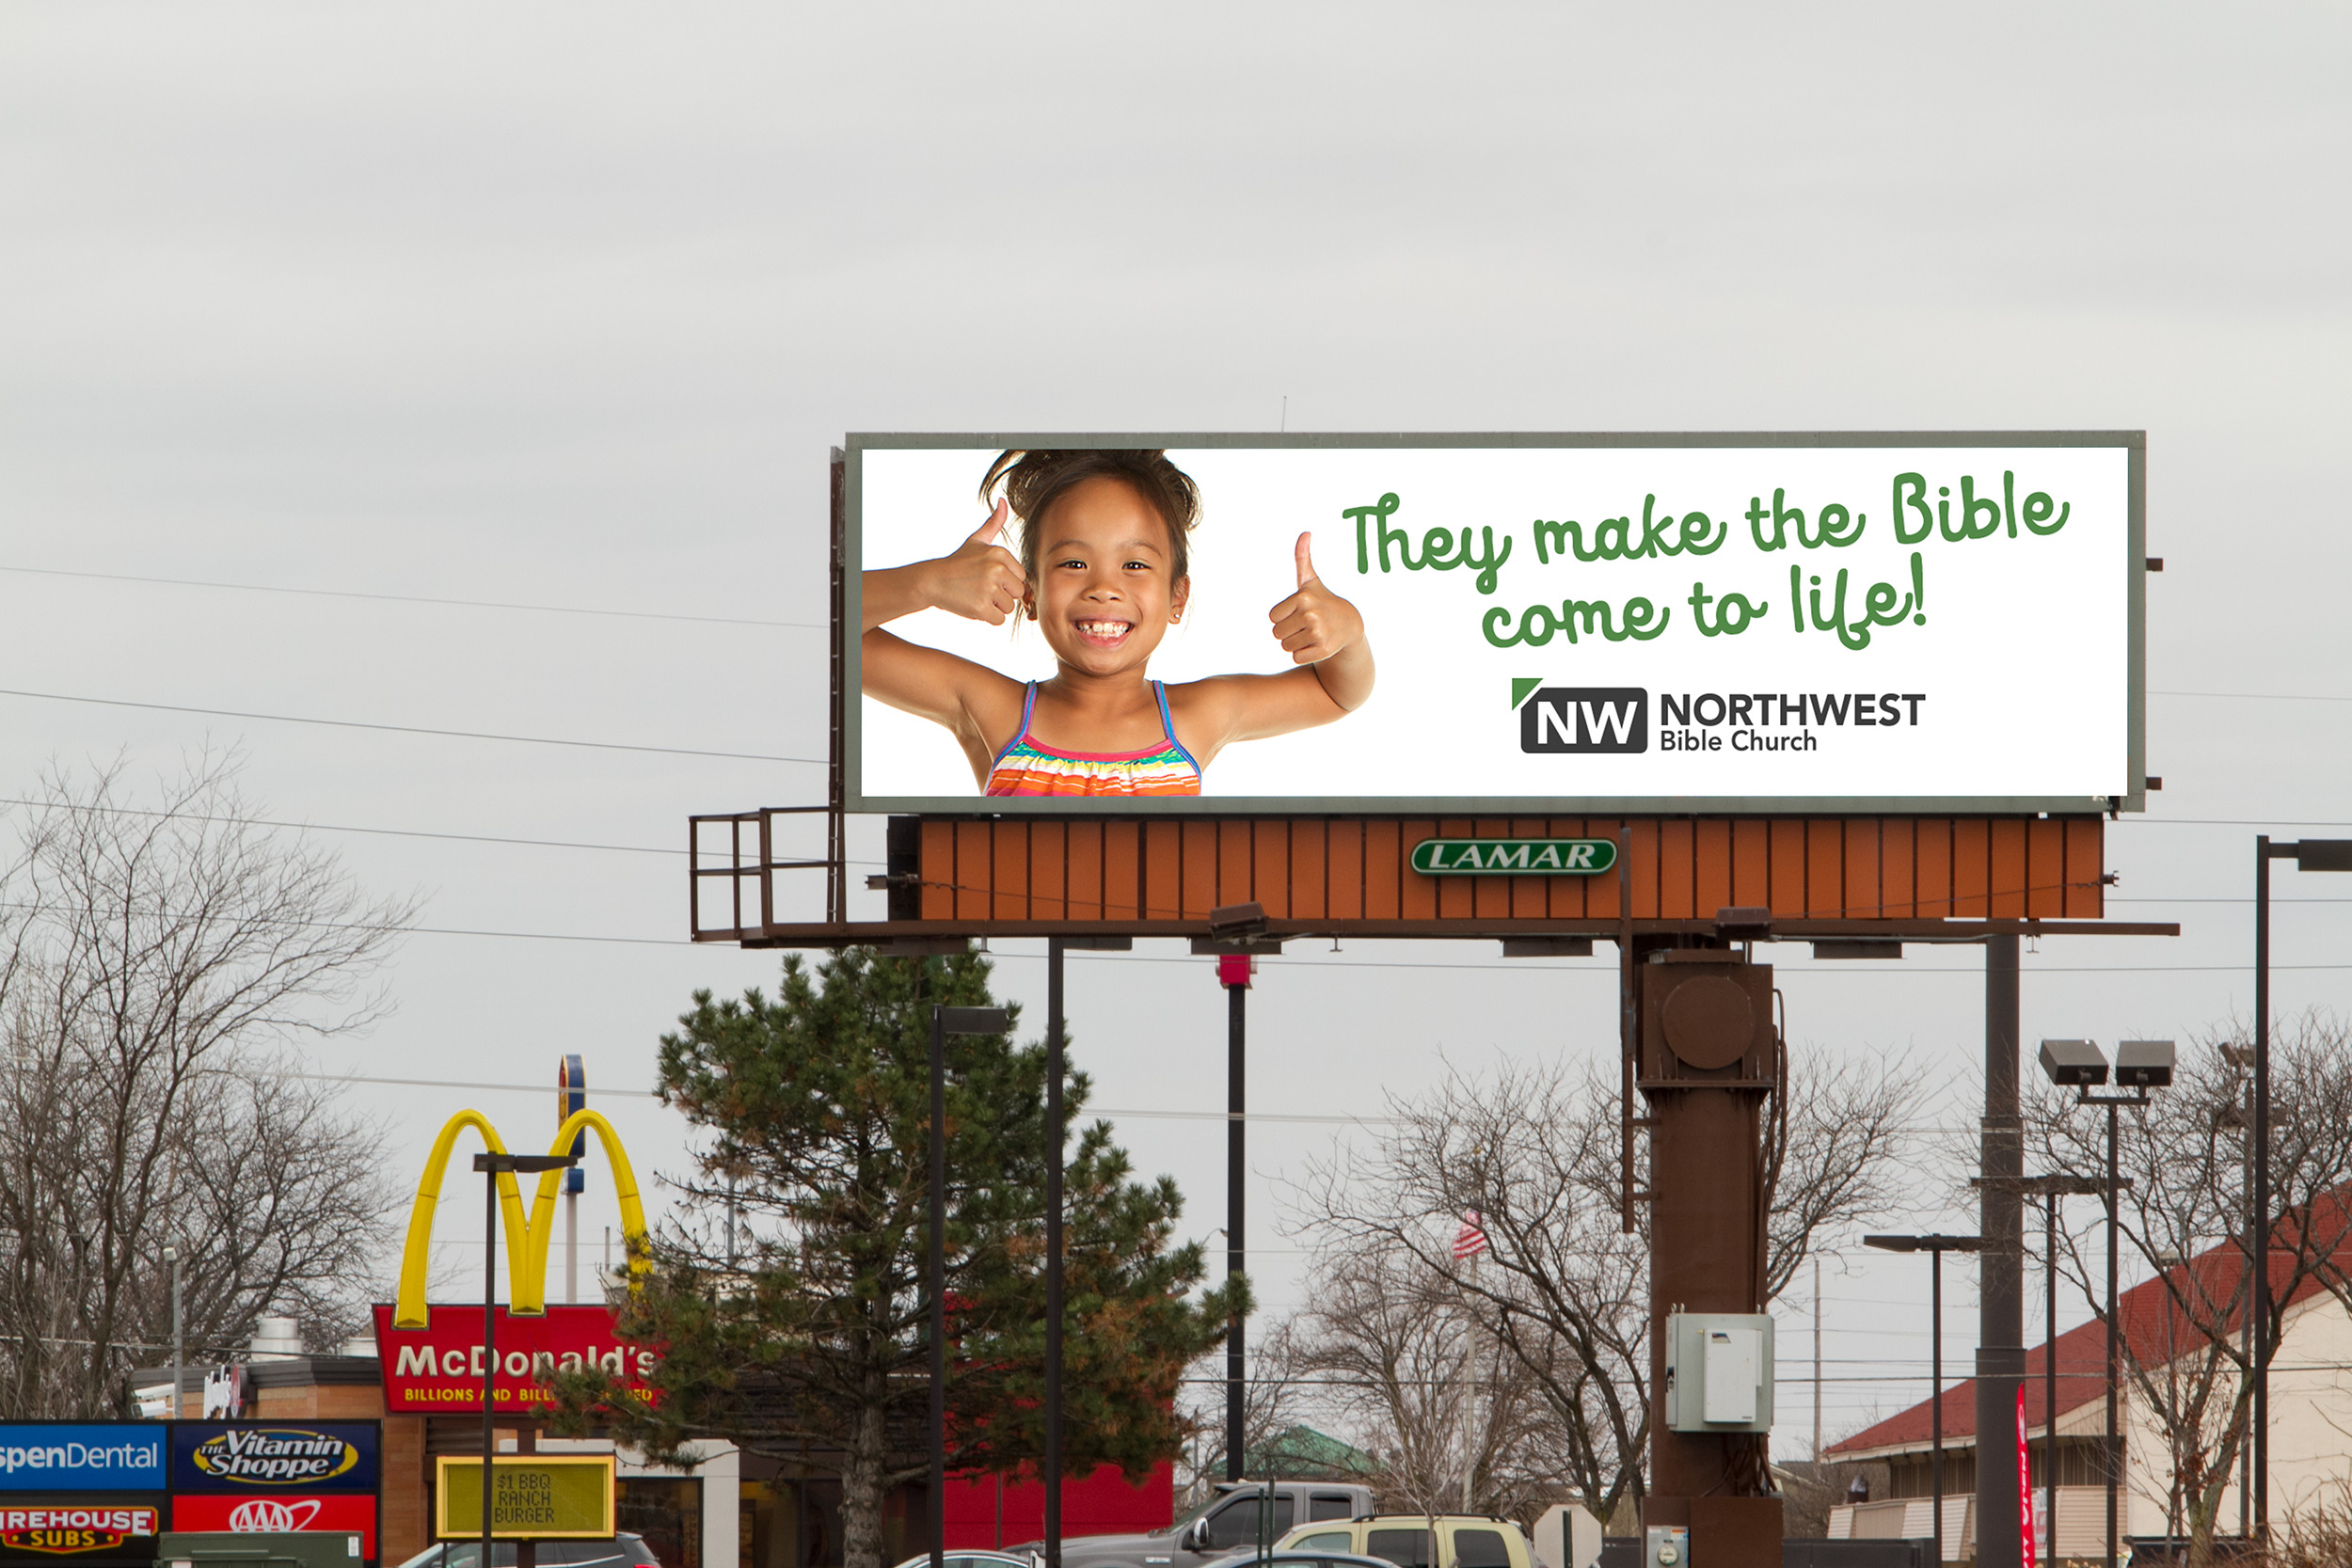 billboard-mockup-kids-v7-web.jpg